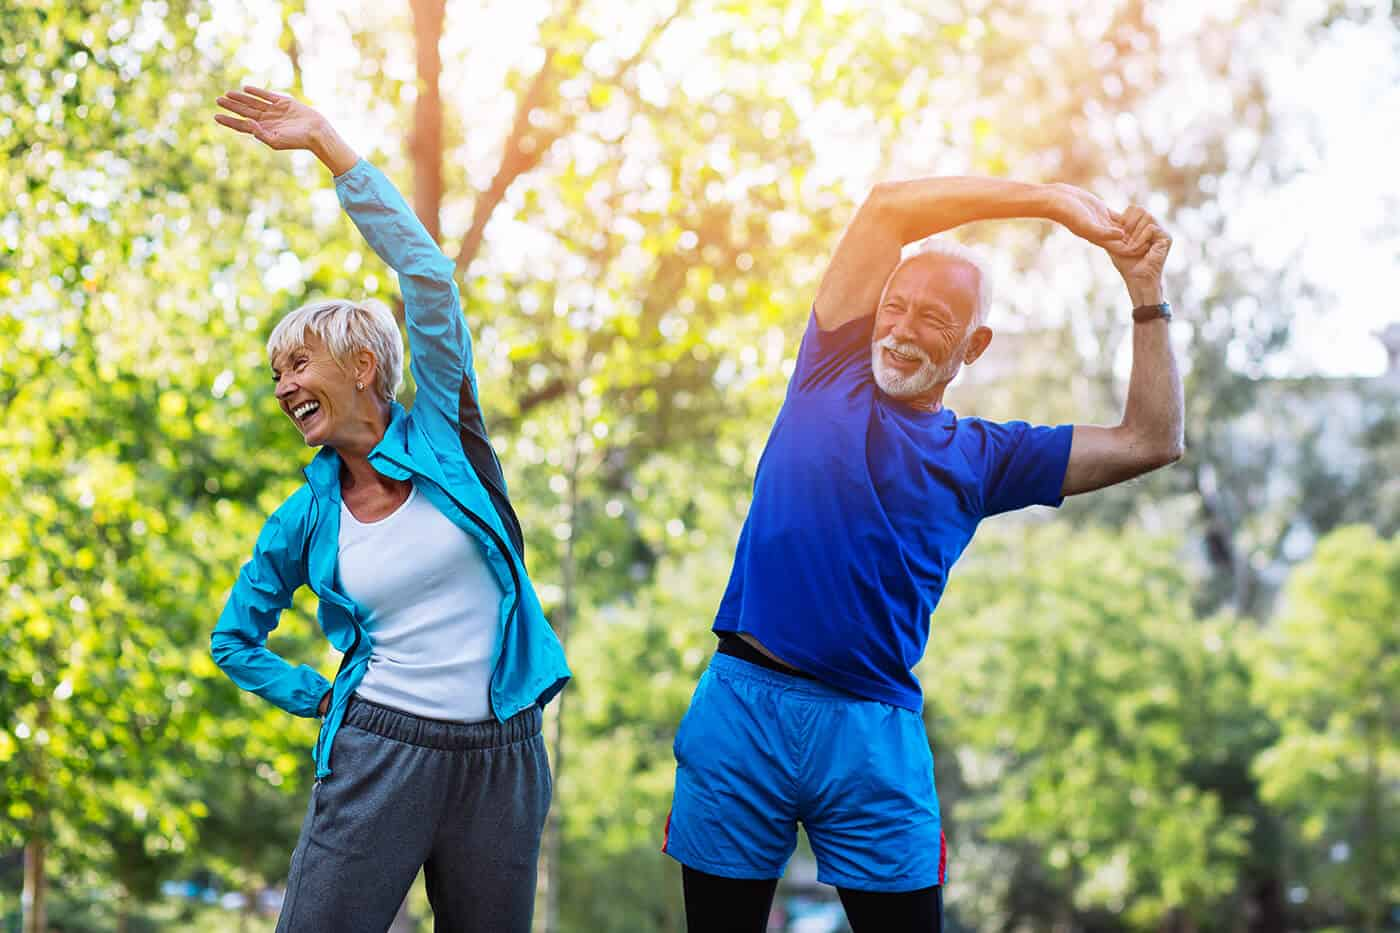 Vital Planet healthy life style - exercising